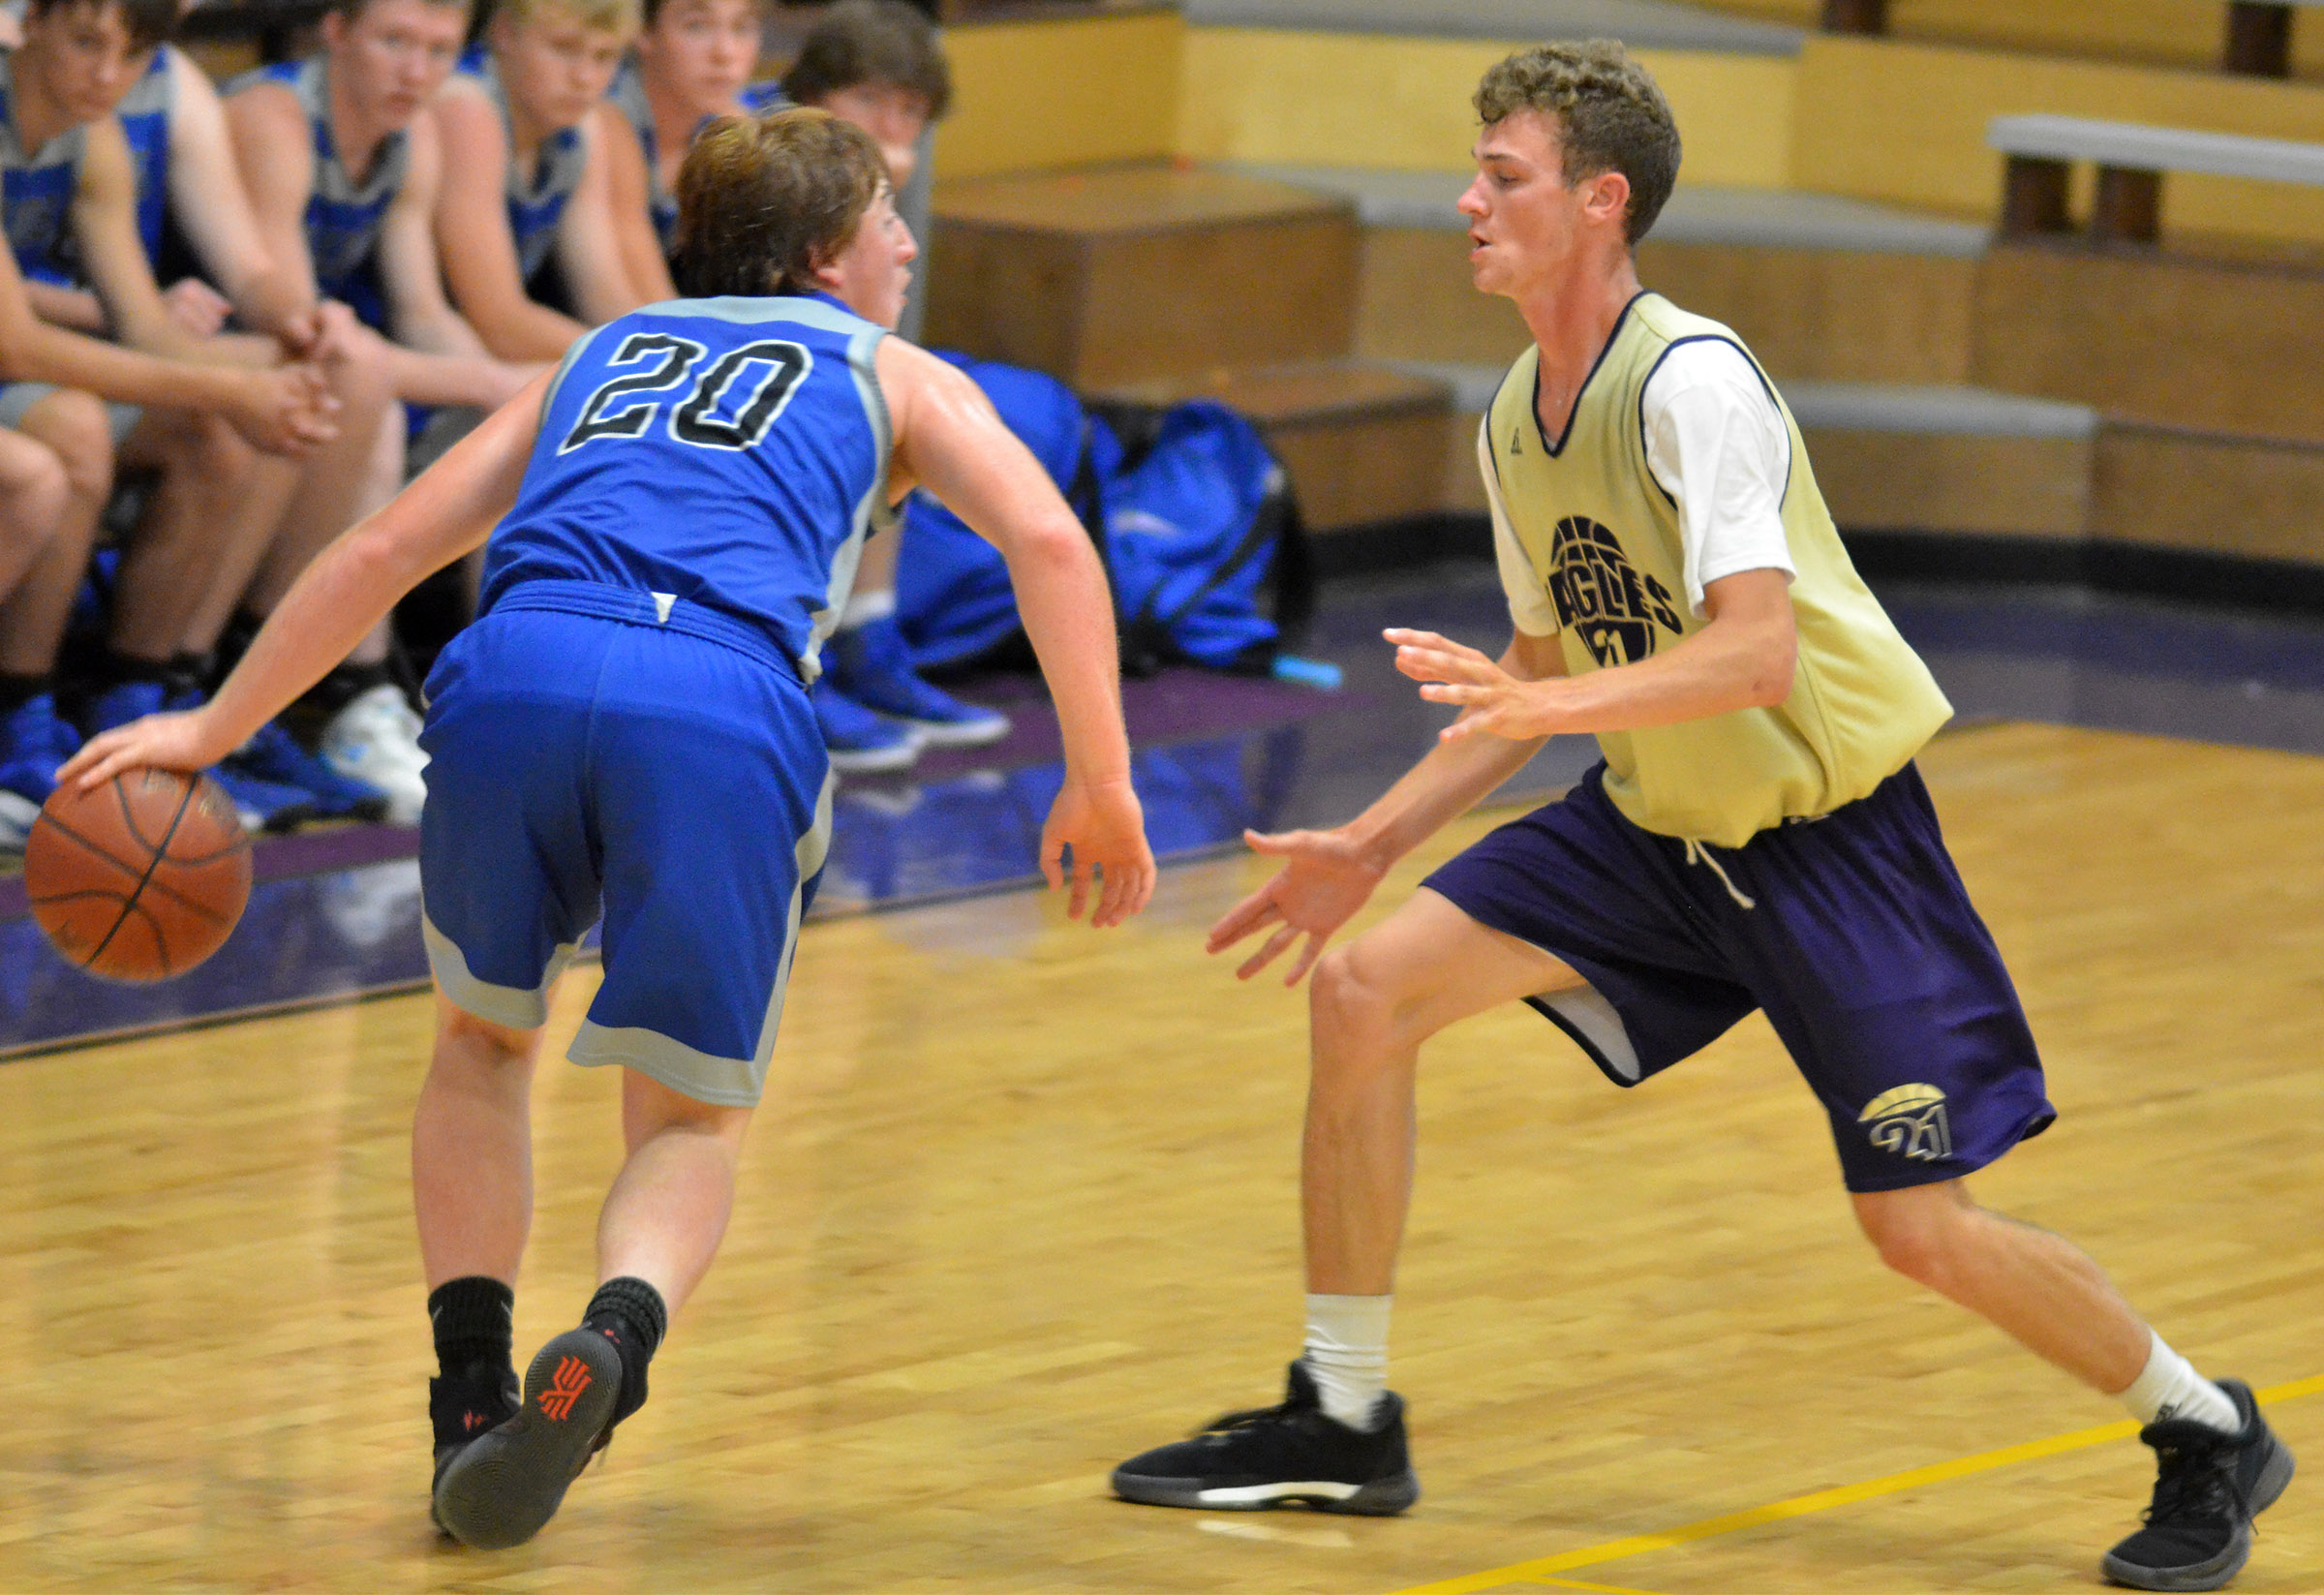 CHS senior Connor Wilson plays defense.